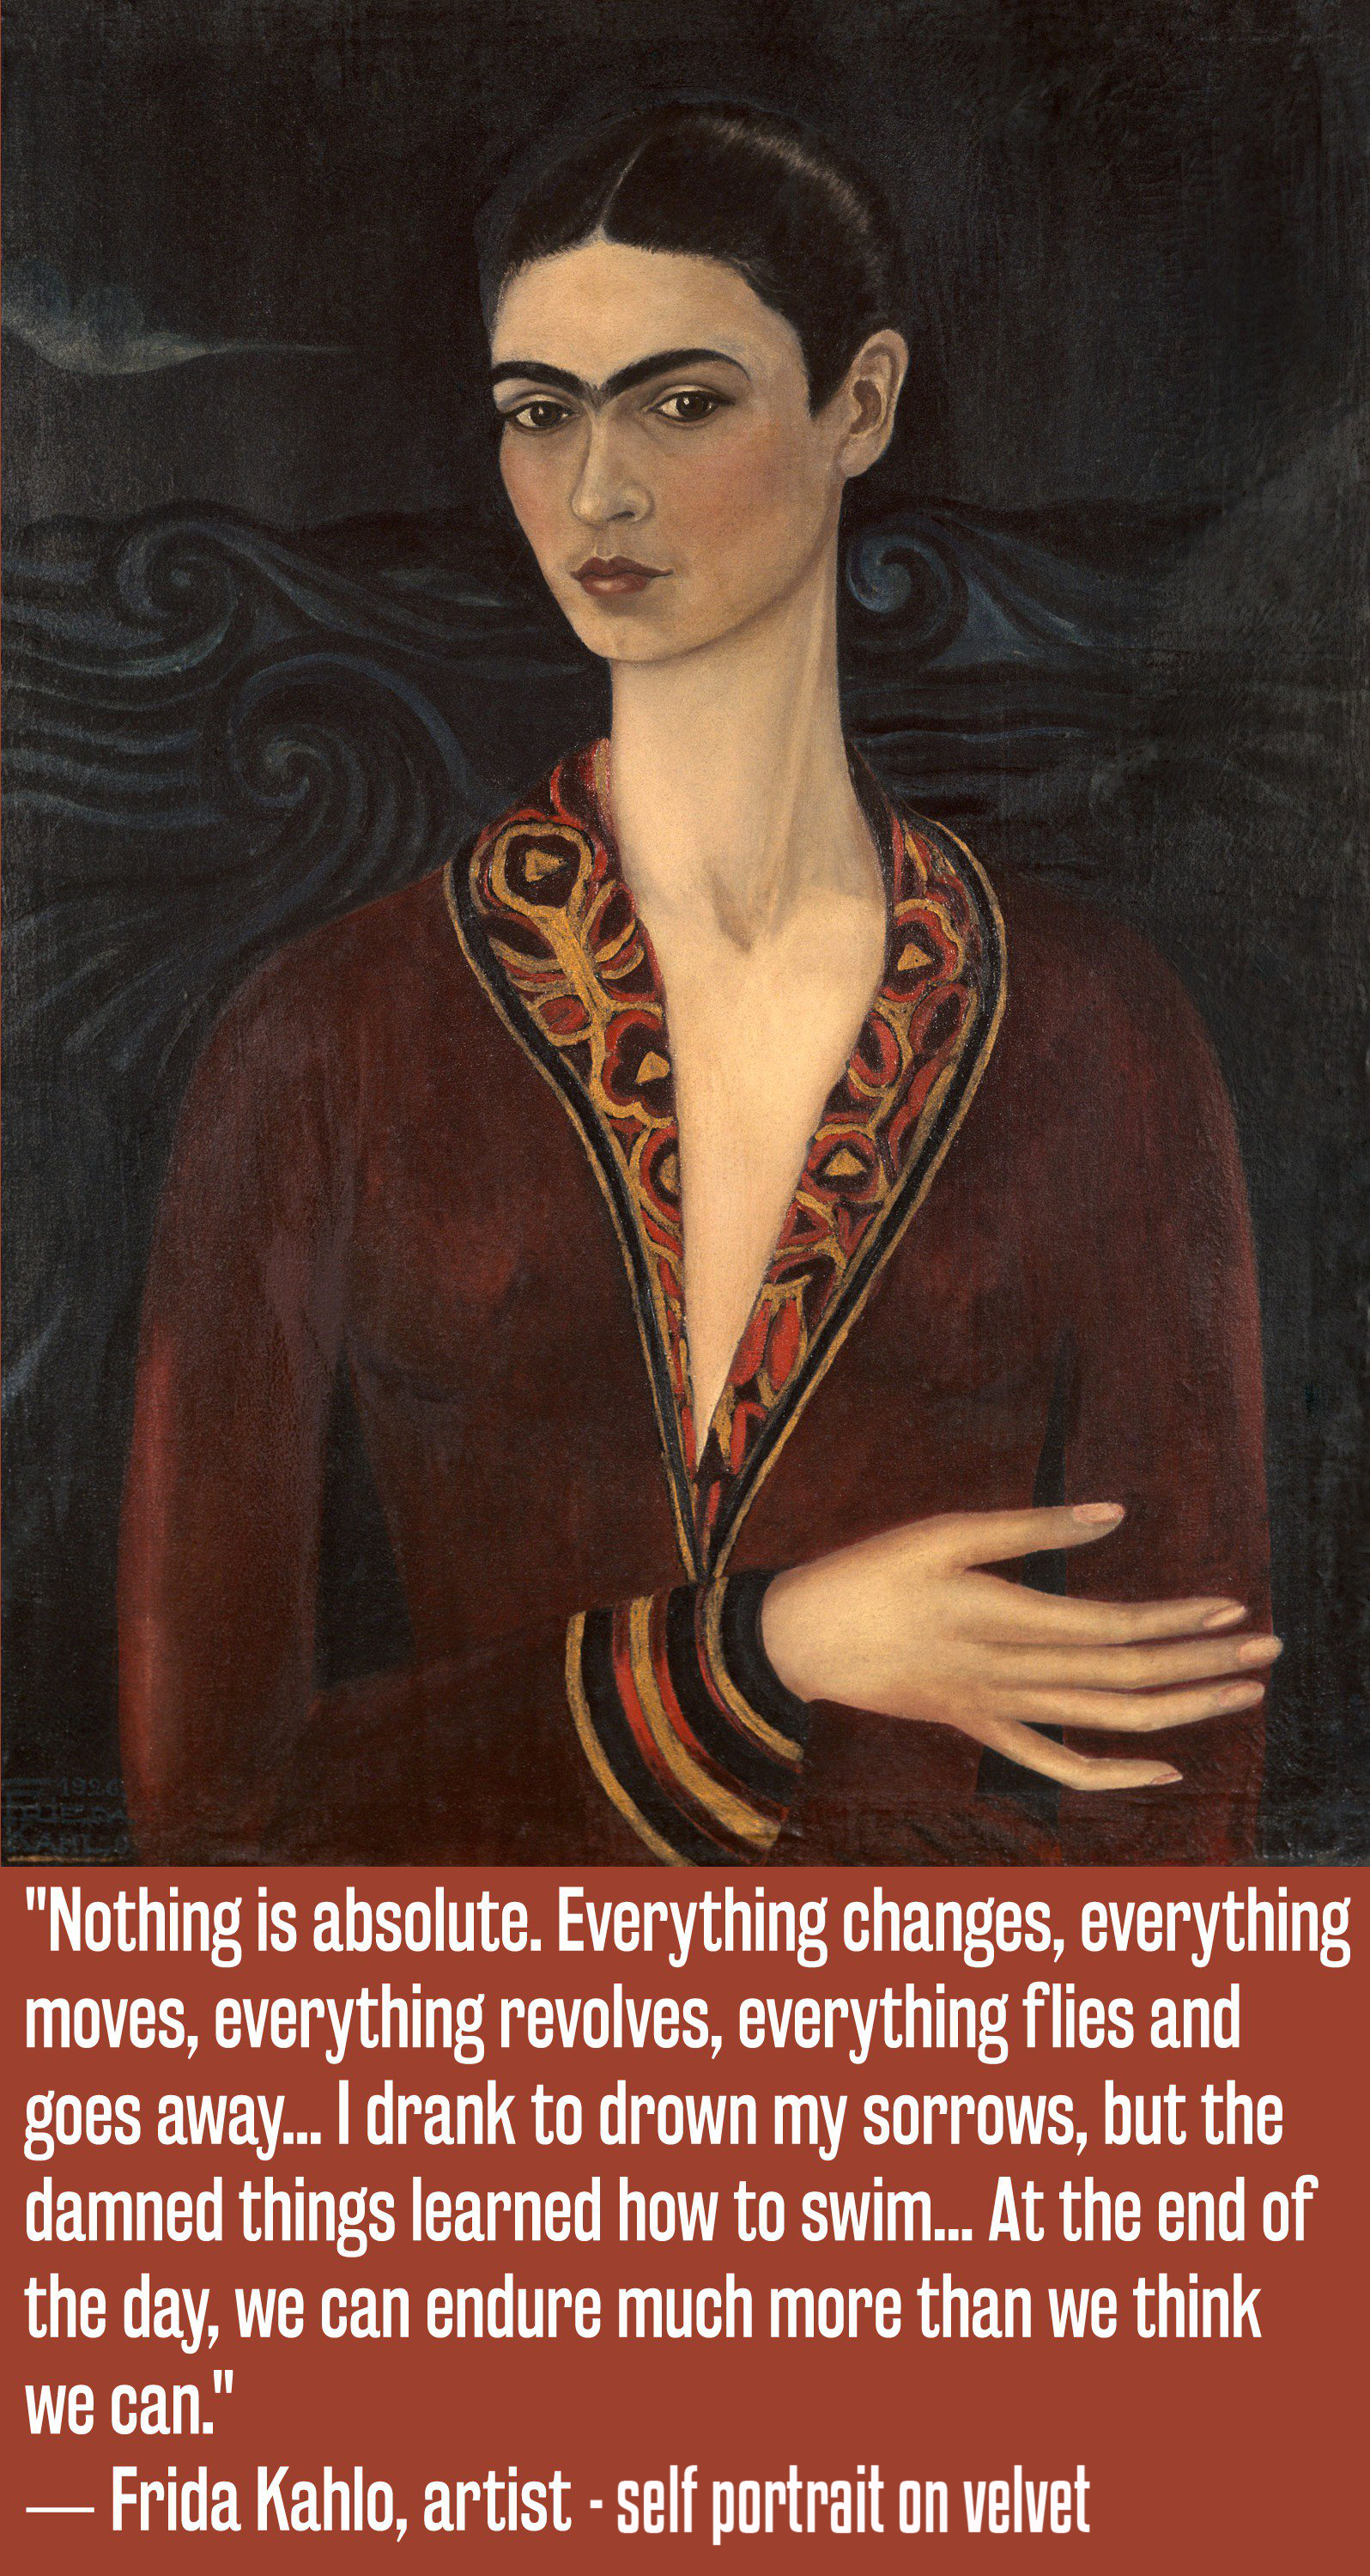 """Nothing is absolute. Everything changes, everything moves, everything revolves, everything flies and goes away. I drank to drown my sorrows, but the damned things learned how to swim. At the end of the day, we can endure much more than we think we can."" ― Frida Kahlo, a self portrait [1596×3000]"